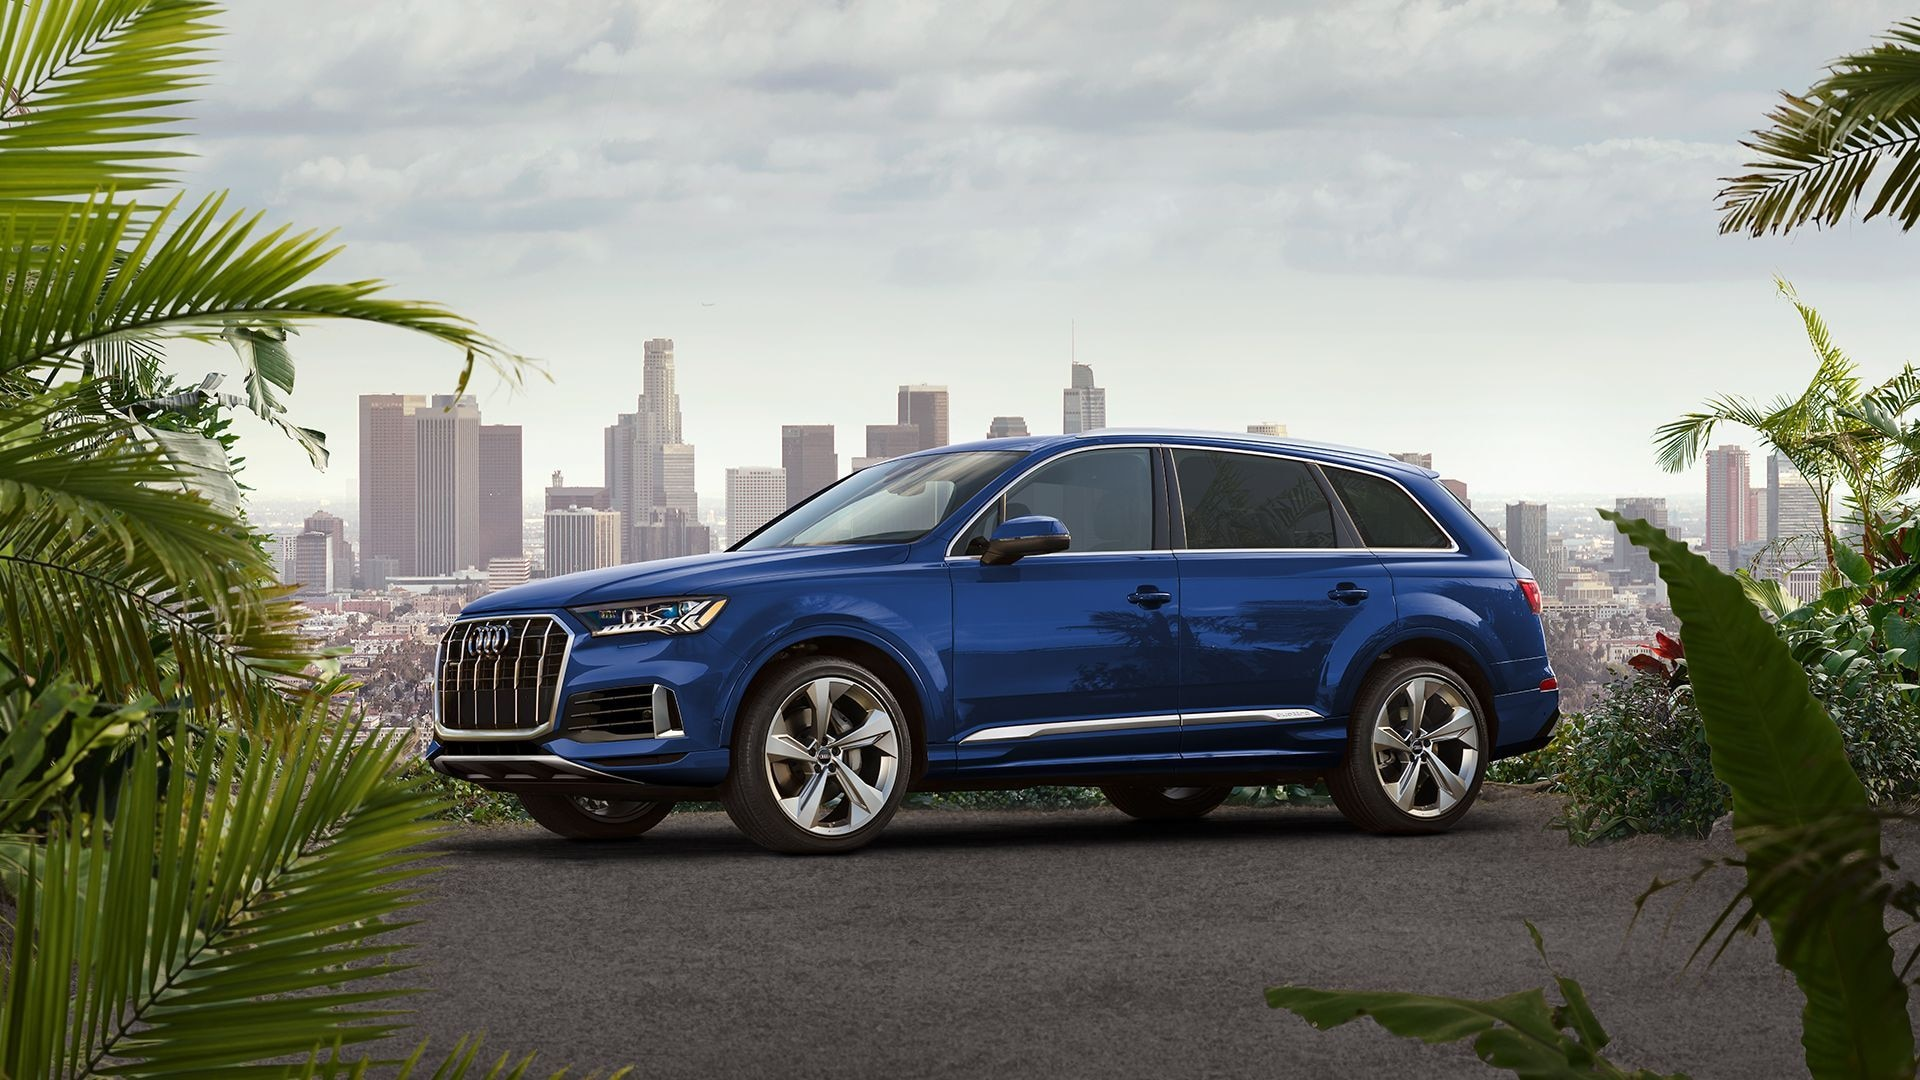 2021 Audi Q7 | Luxury SUV | Audi USA